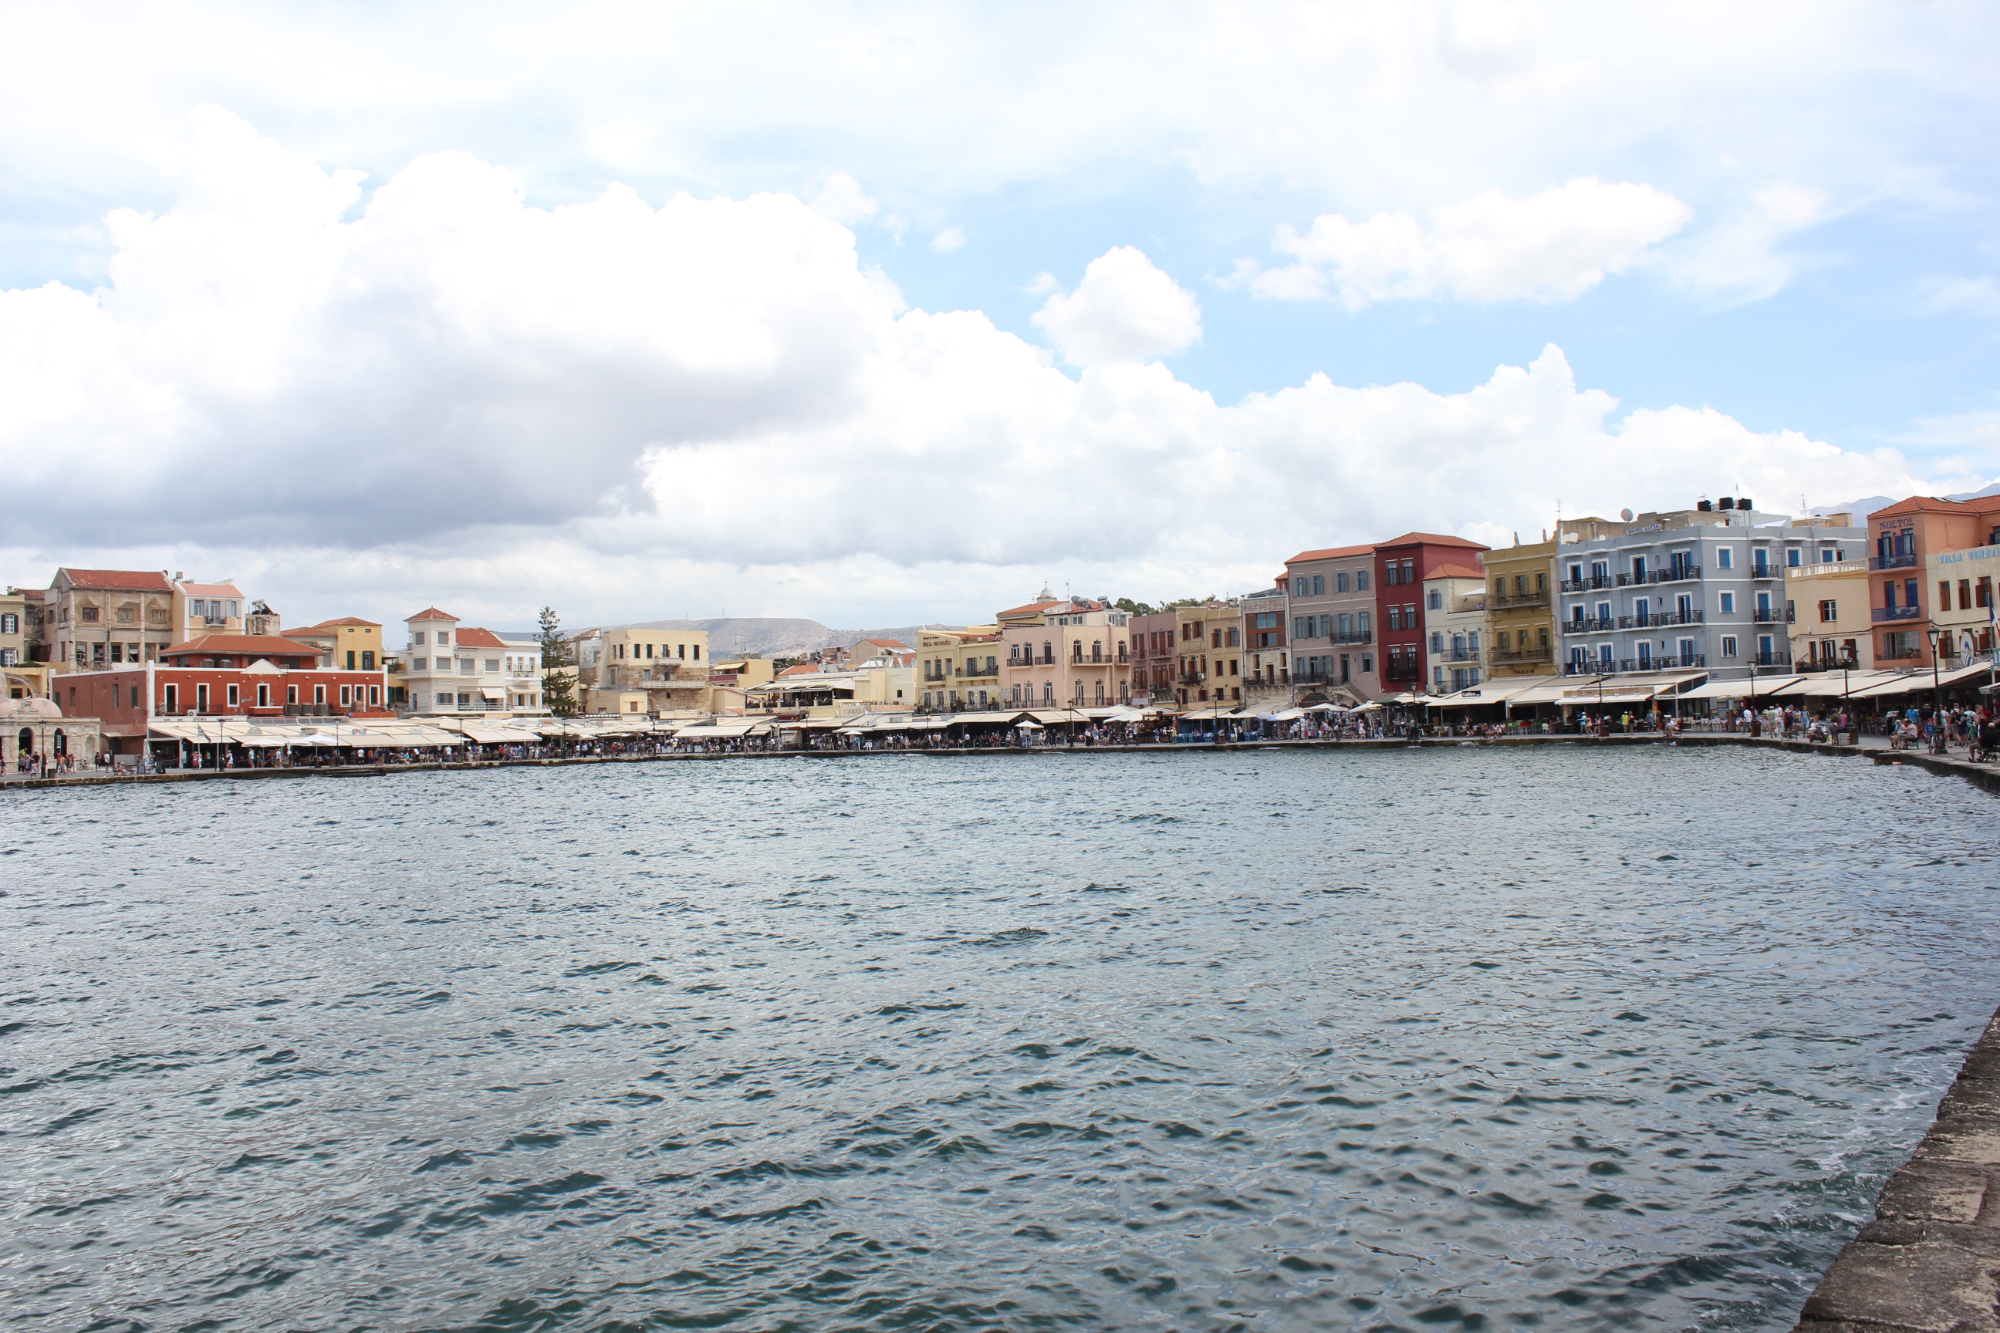 A view of the harbour in Chania, the second largest city on the island.